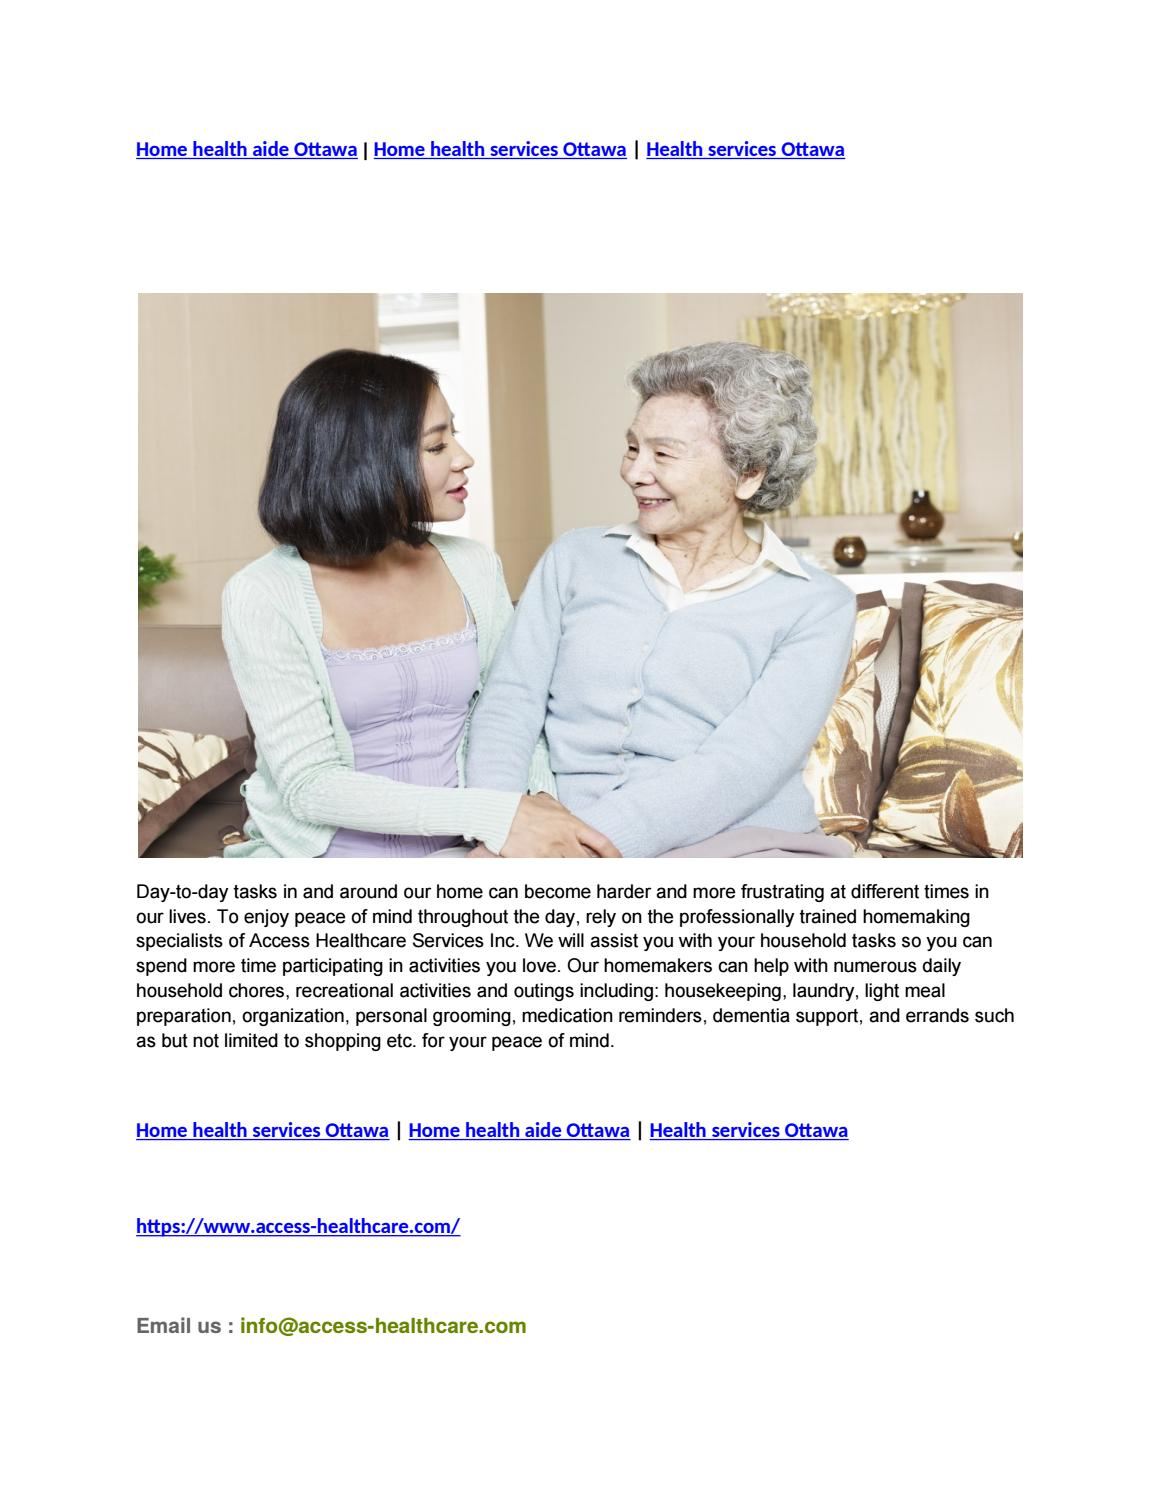 Home Health Aide >> Home Health Aide Ottawa Home Health Services Ottawa